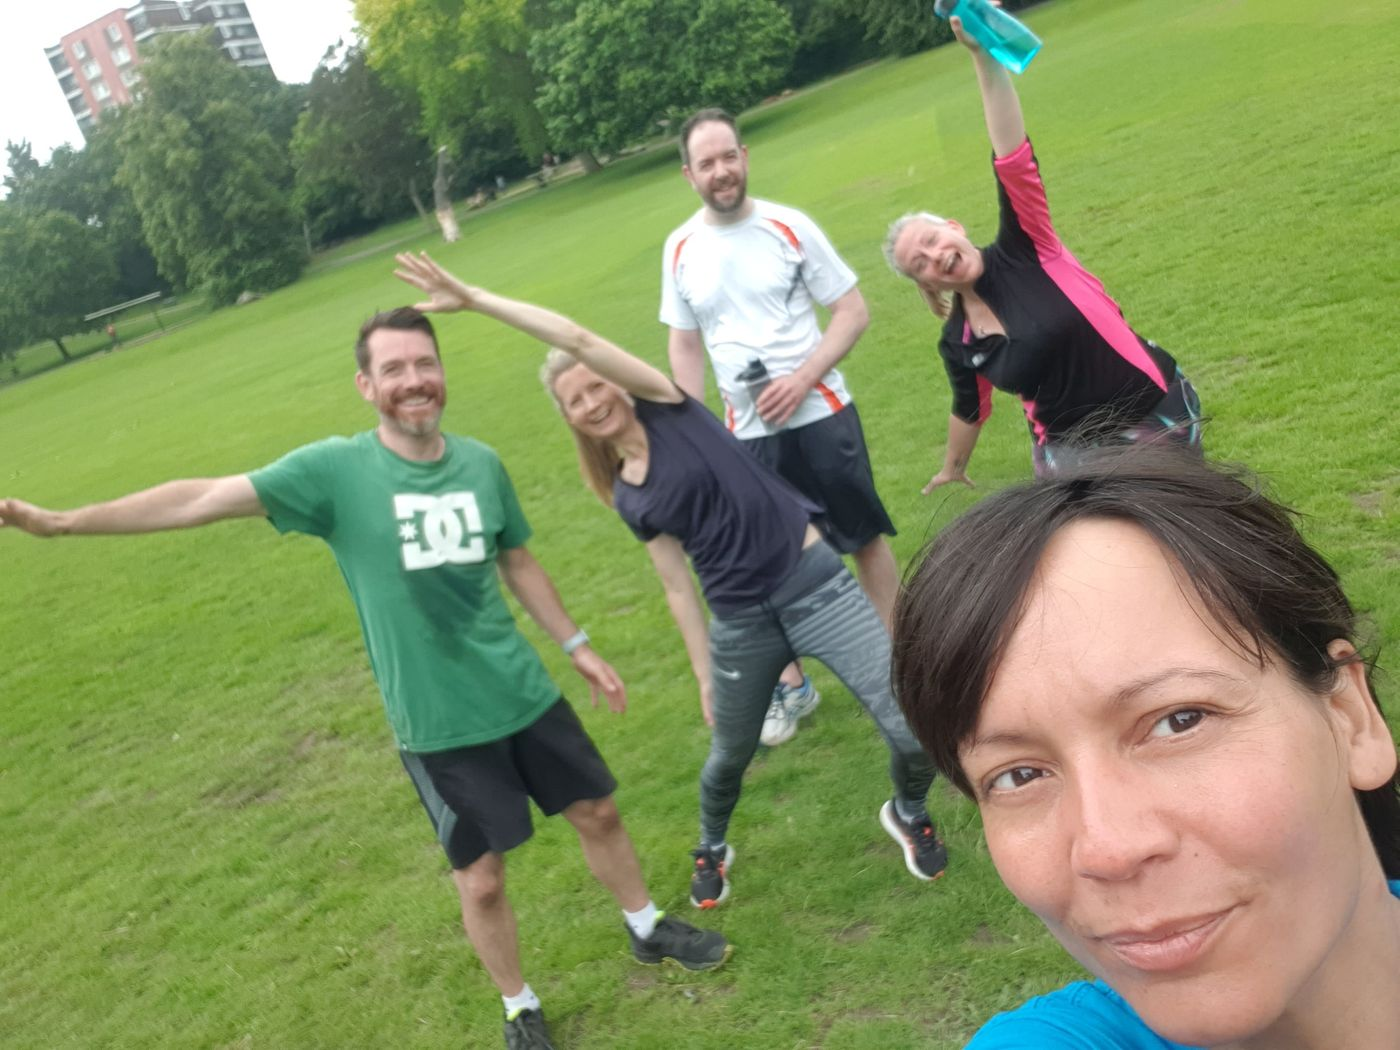 I am very excited to be branching out to the lovely Mayow Park in Sydenham. At the special request of this crazy lot! [@embacon](/u/embacon) [@louisehenry2nd](/u/louisehenry2nd)